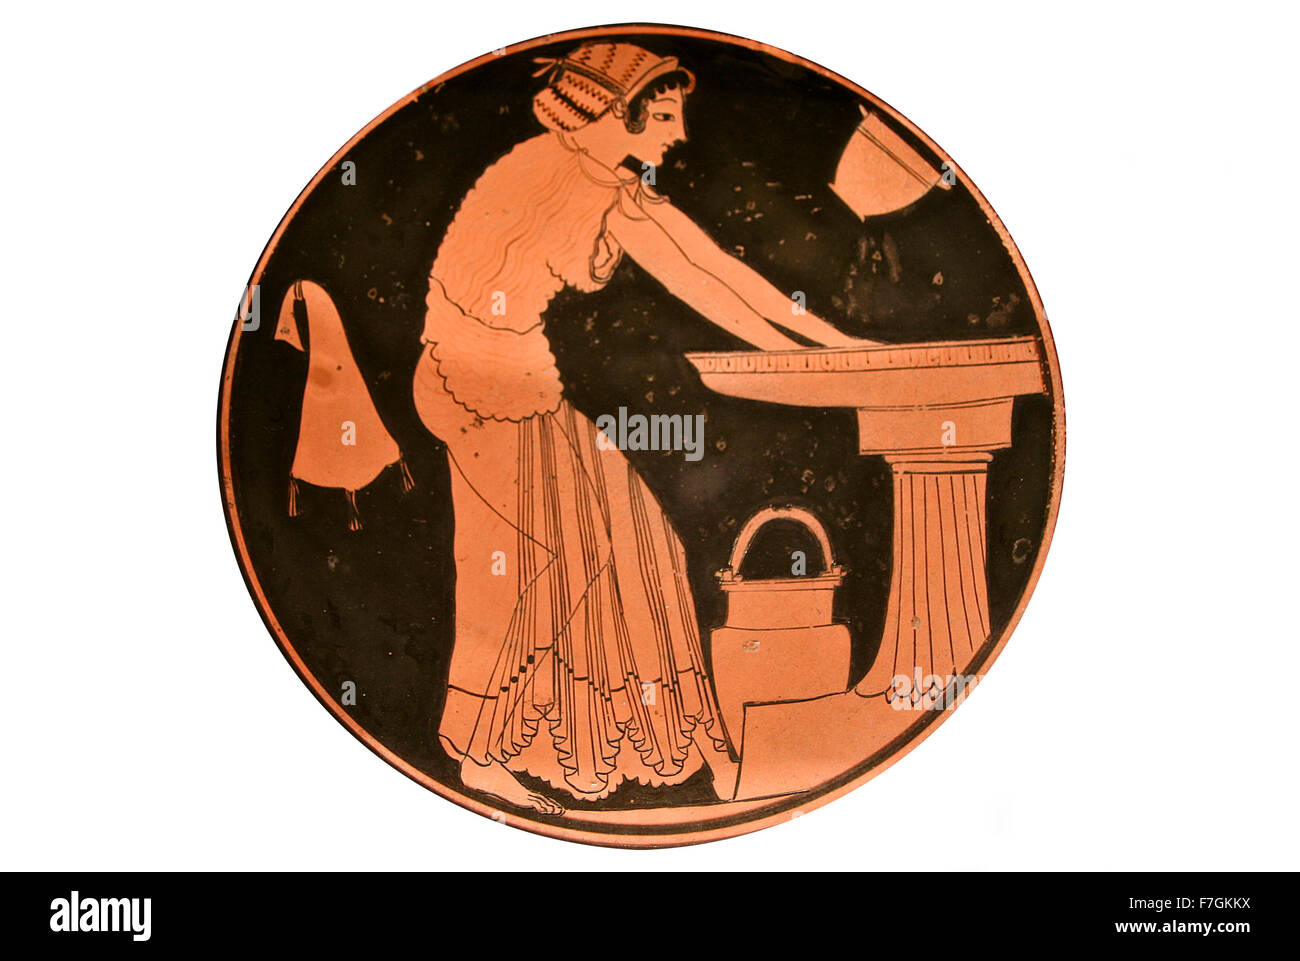 Ancient greek vase paintings in black over red ceramic. Isolated over white background - Stock Image